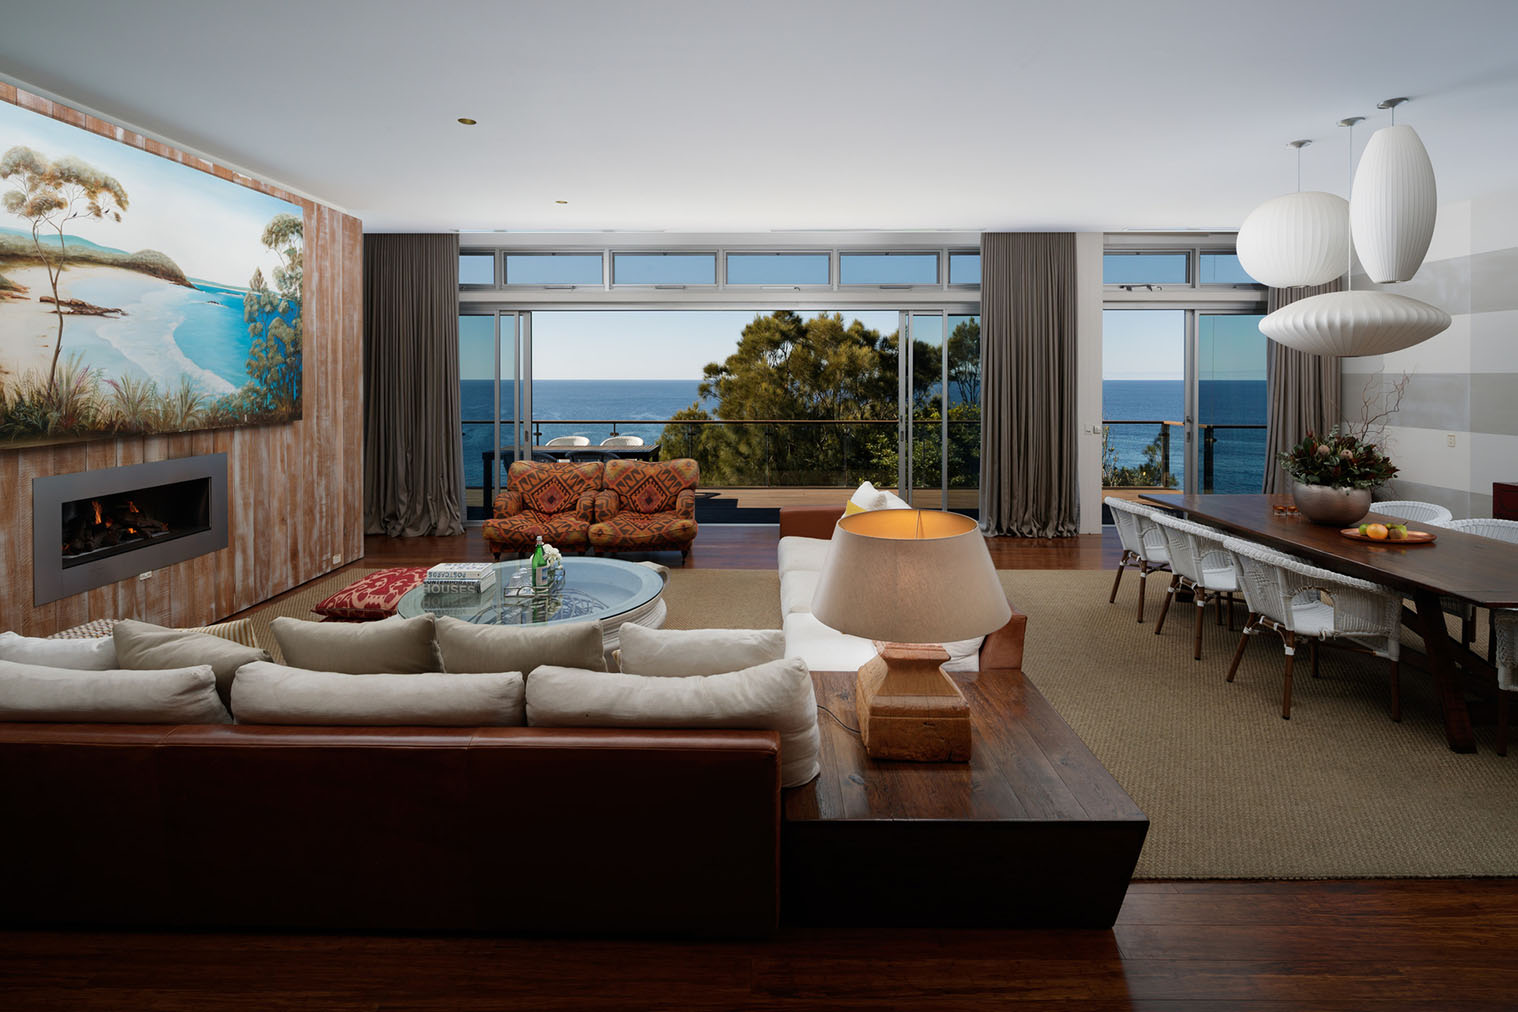 Check In to Bannisters by the Sea in Mollymook | Qantas ...